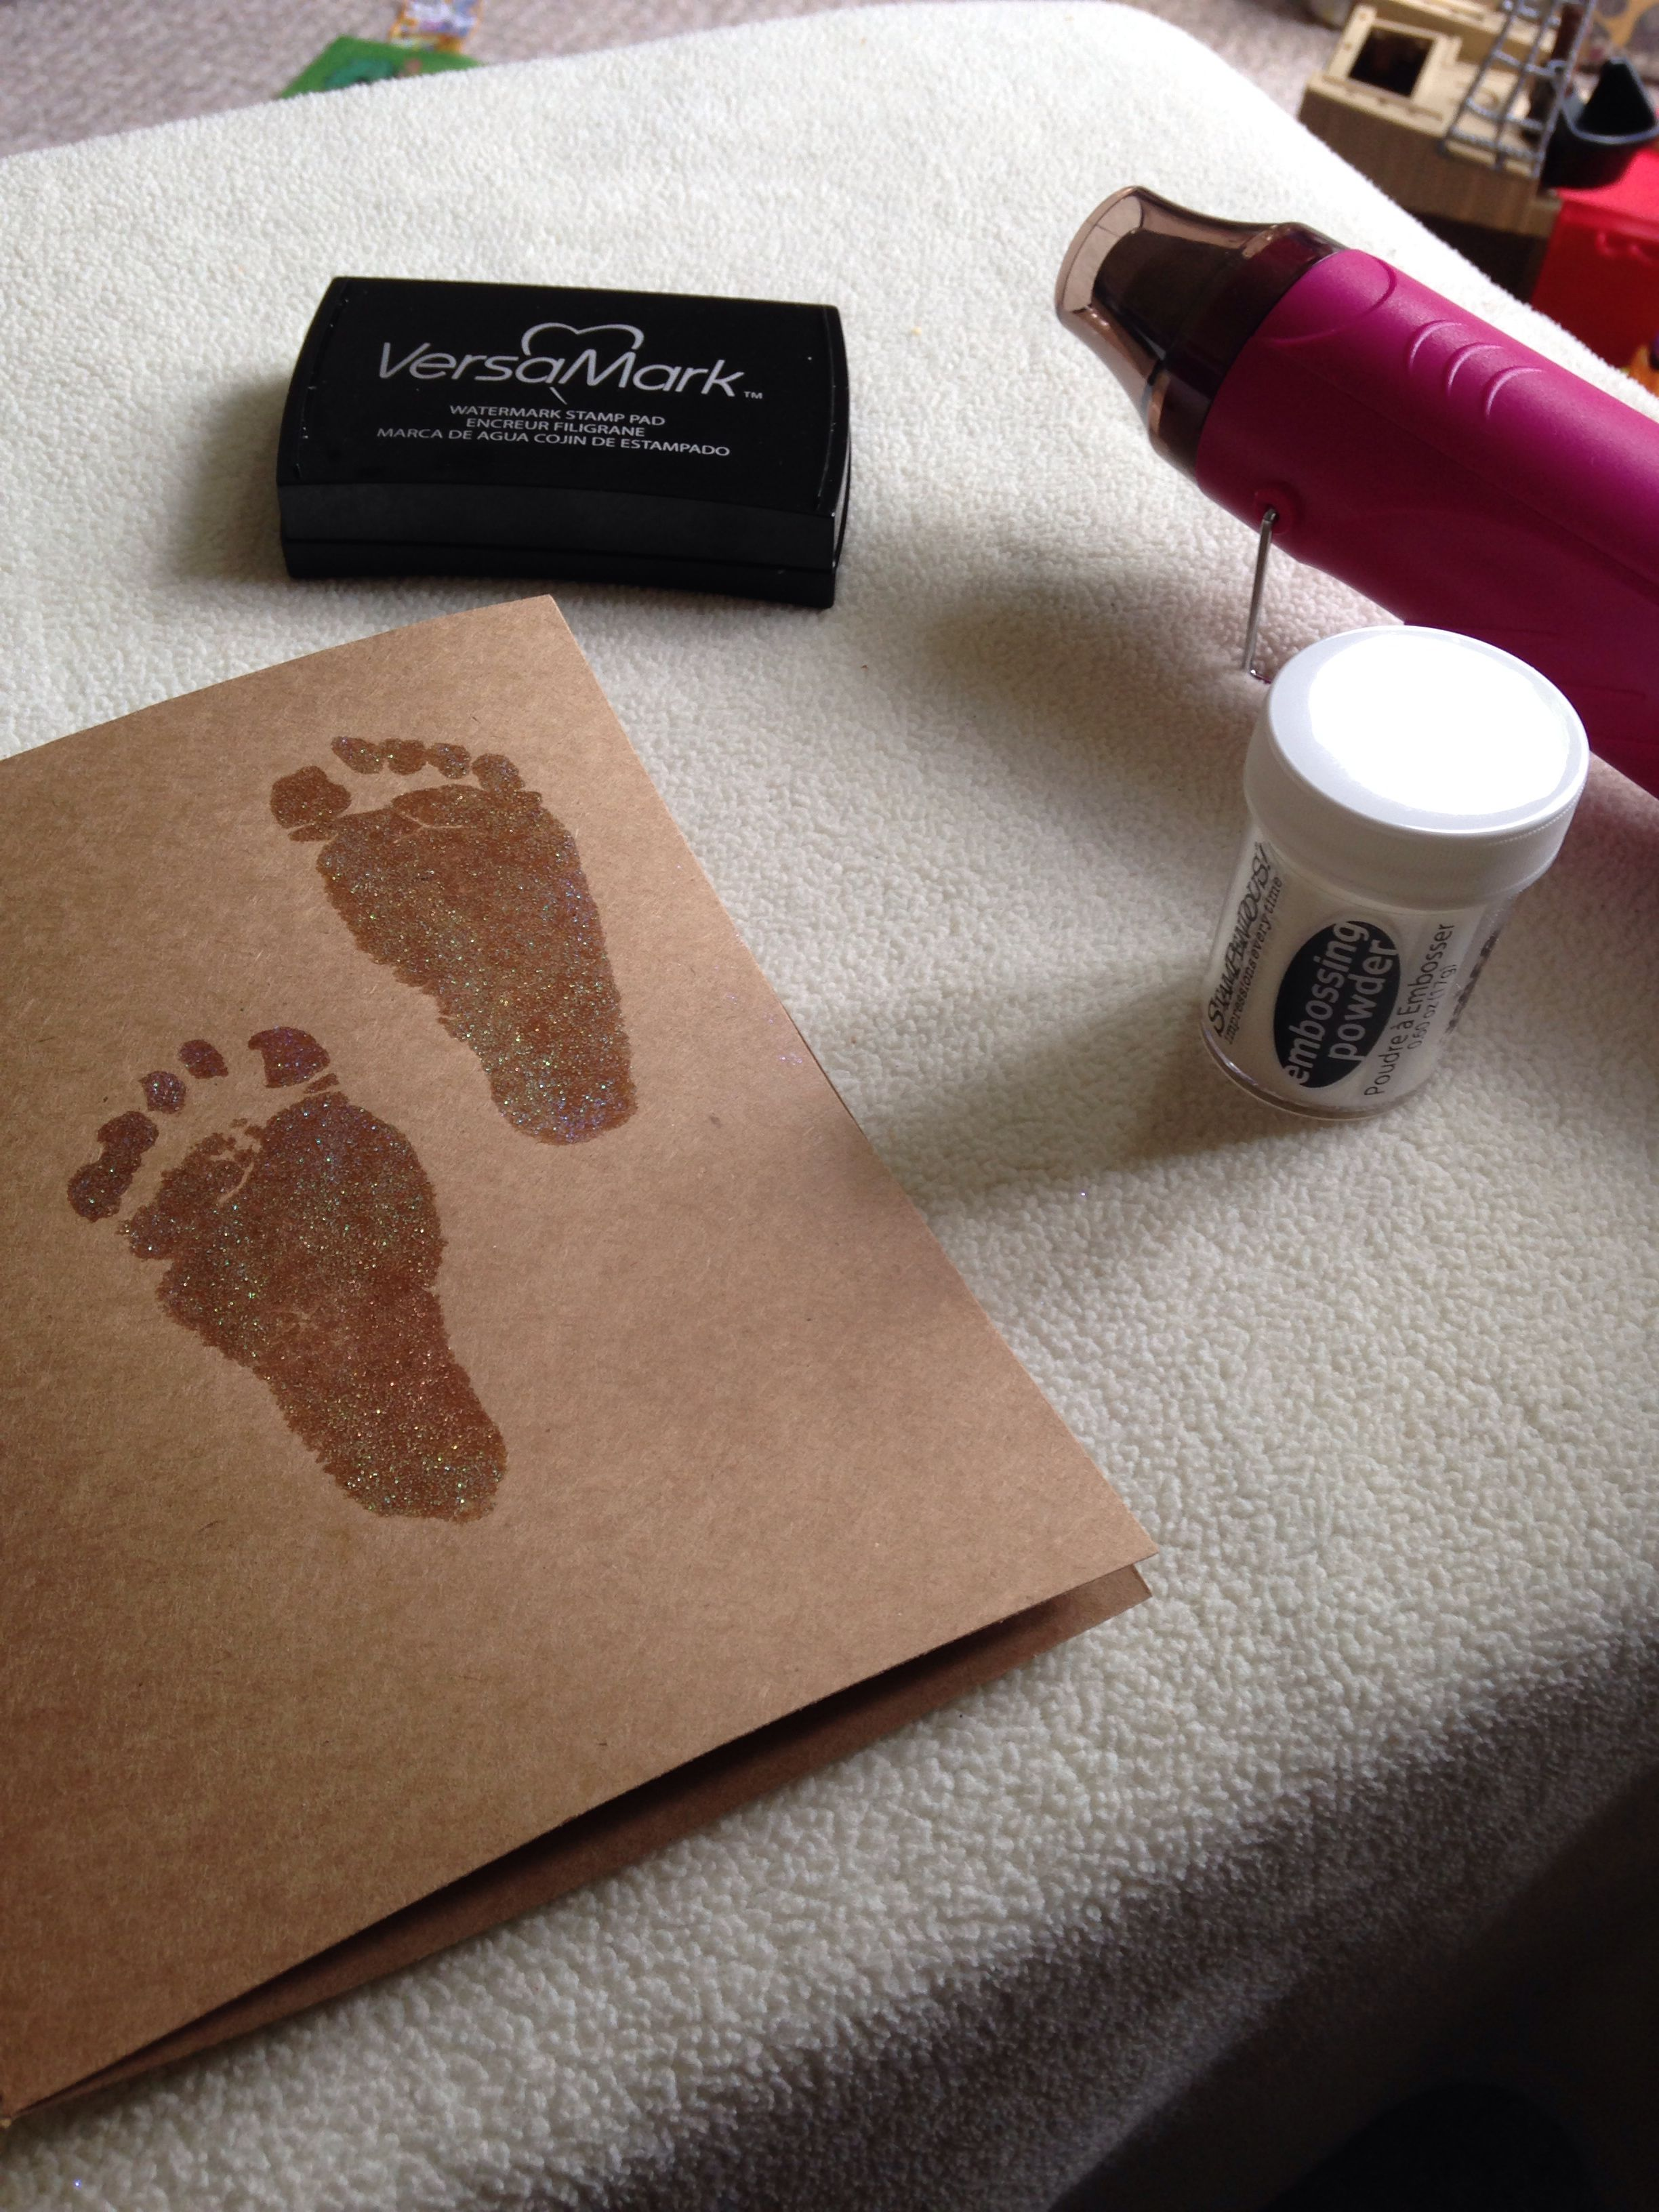 Capturing my baby girls footprints using versamark and embossing powder. Doesn't stain her feet and is easy to clean off unlike normal paints.